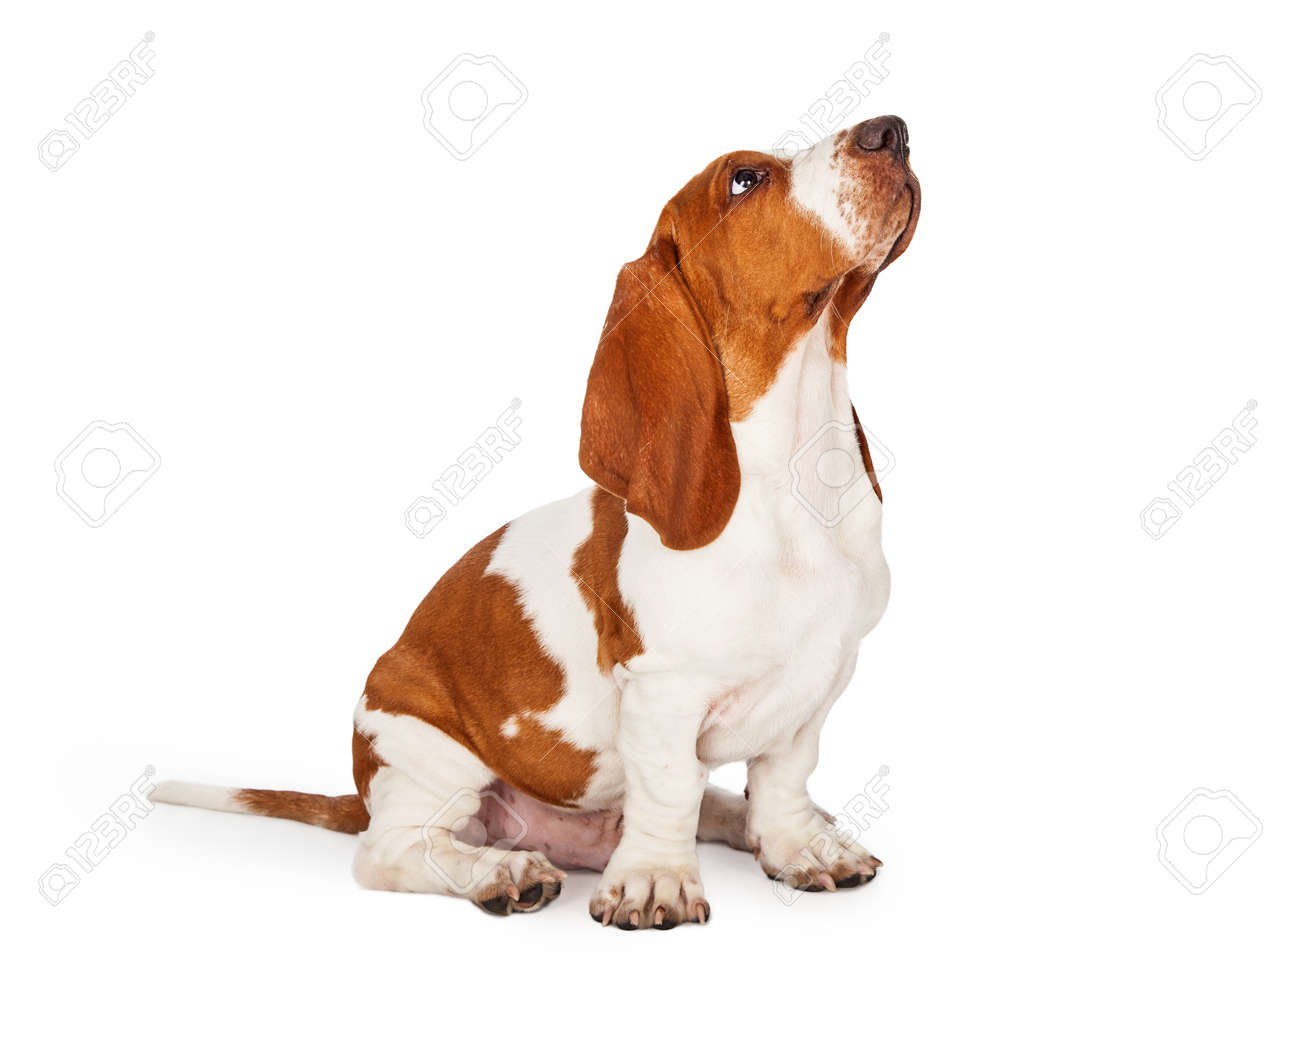 A Cute And Well Trained Basset Hound Puppy Dog Looking Up While